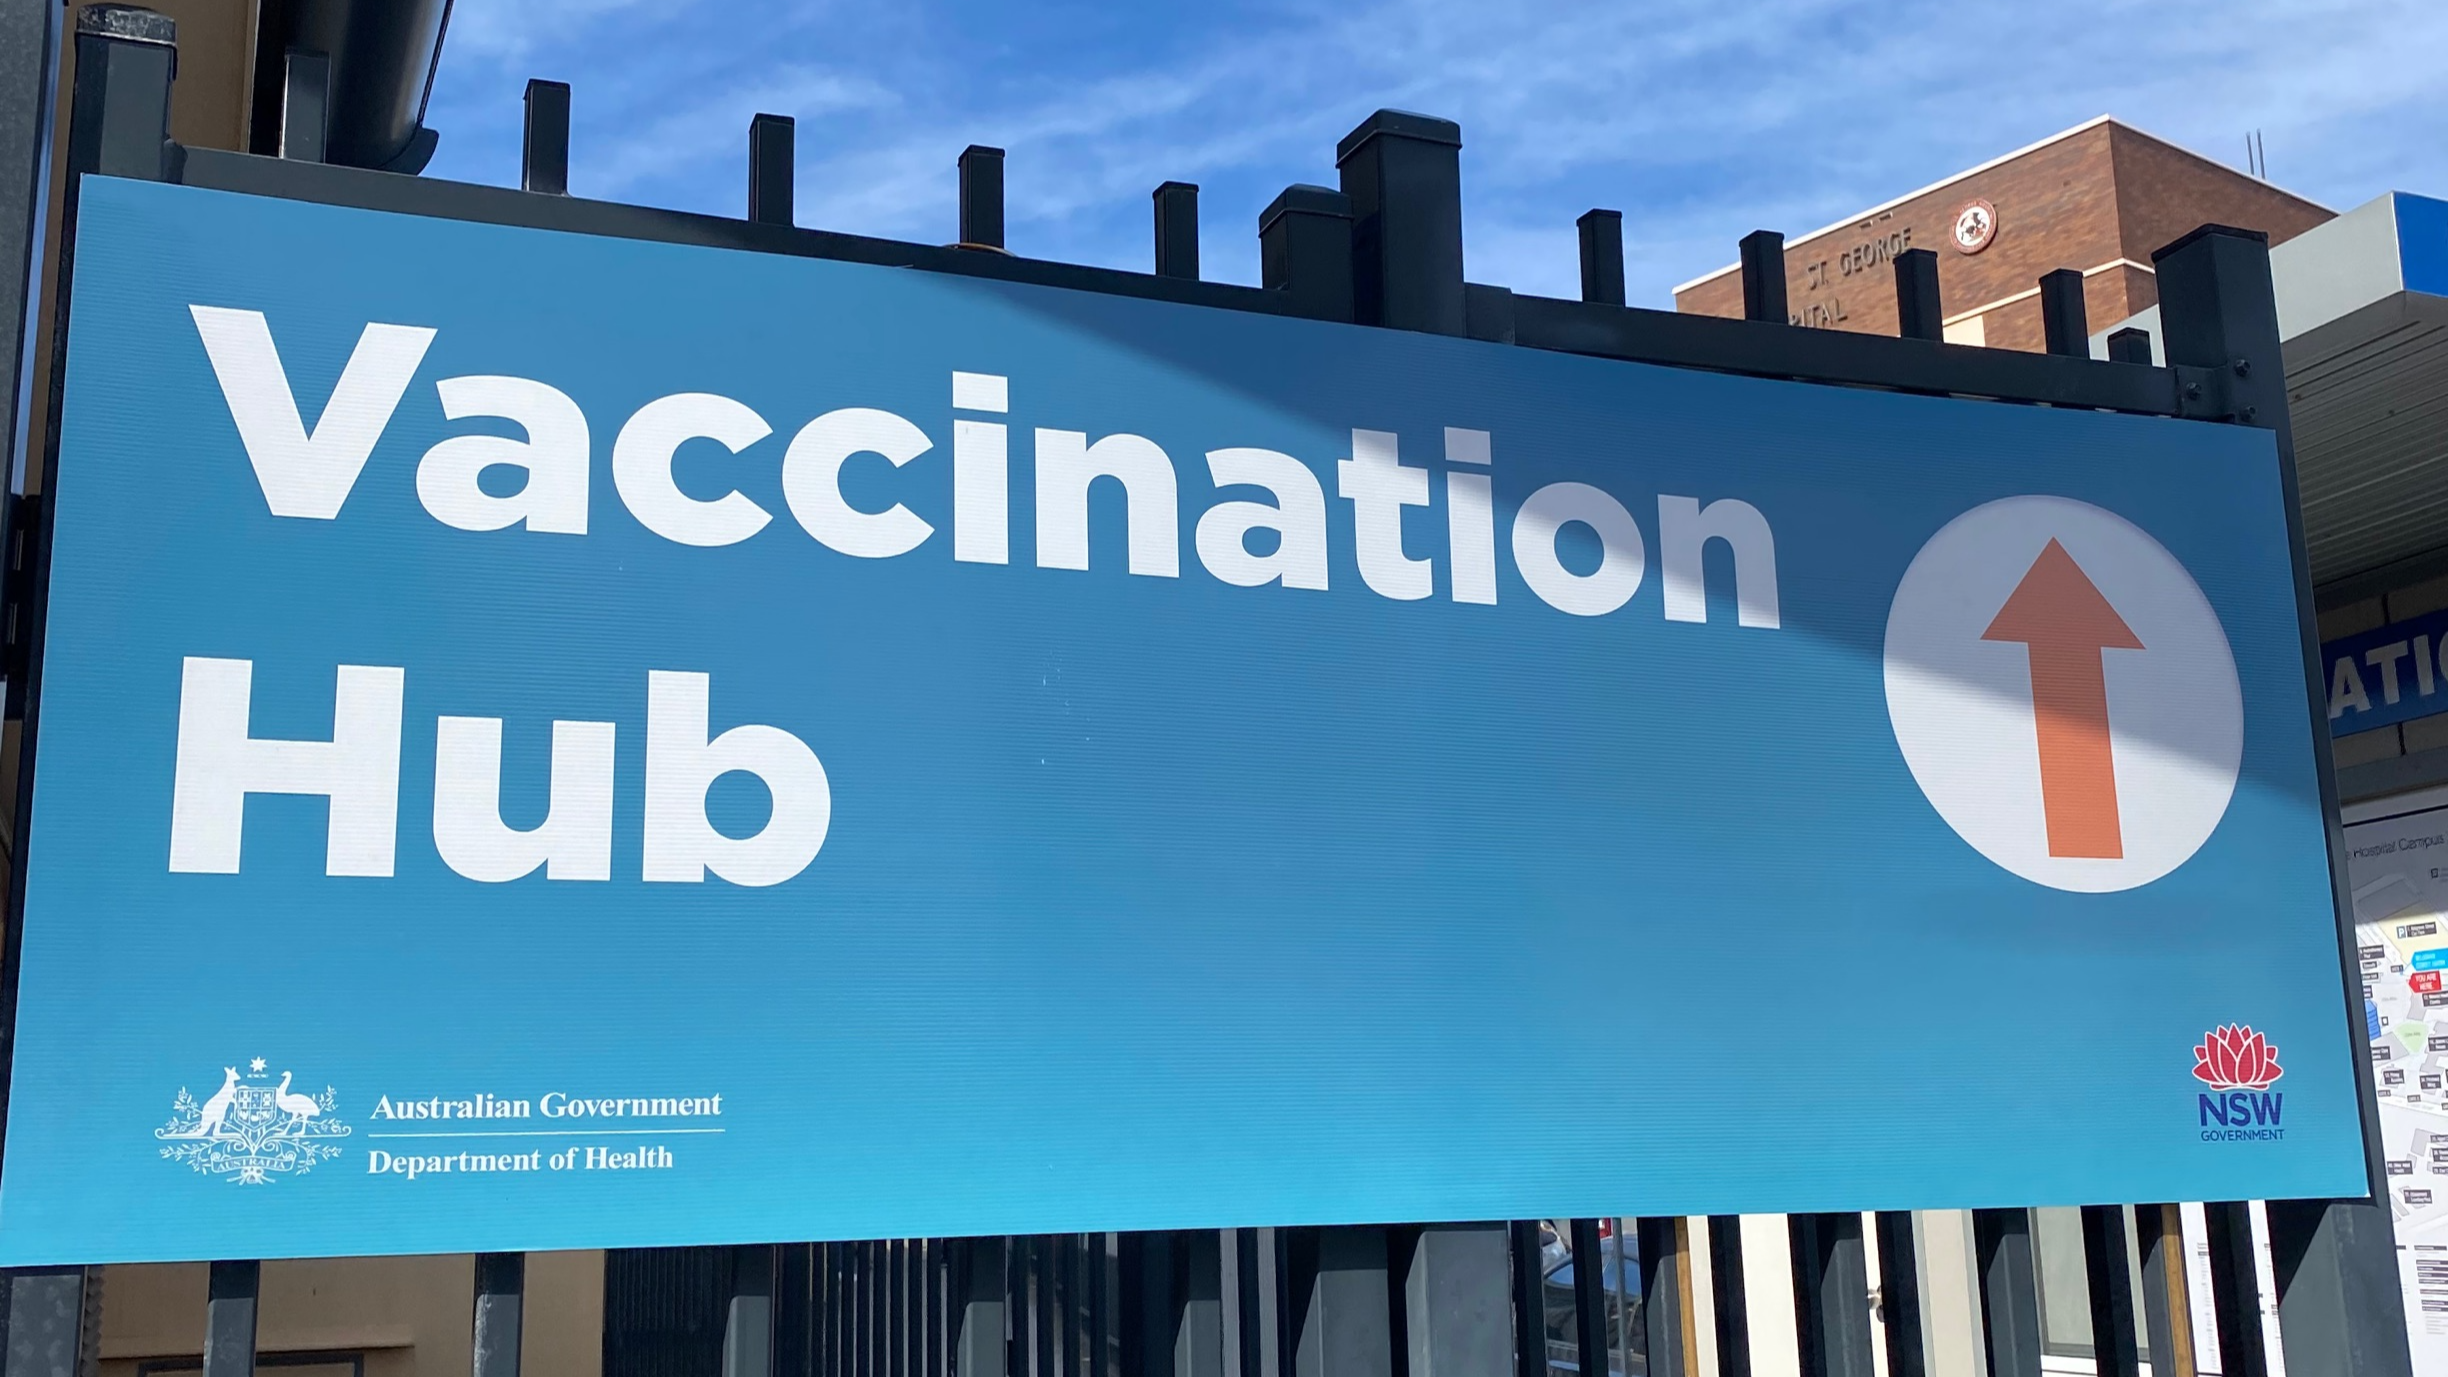 OUR STAFF ARE VACCINATED FOR COVID19 AND READY TO SUPPORT YOU